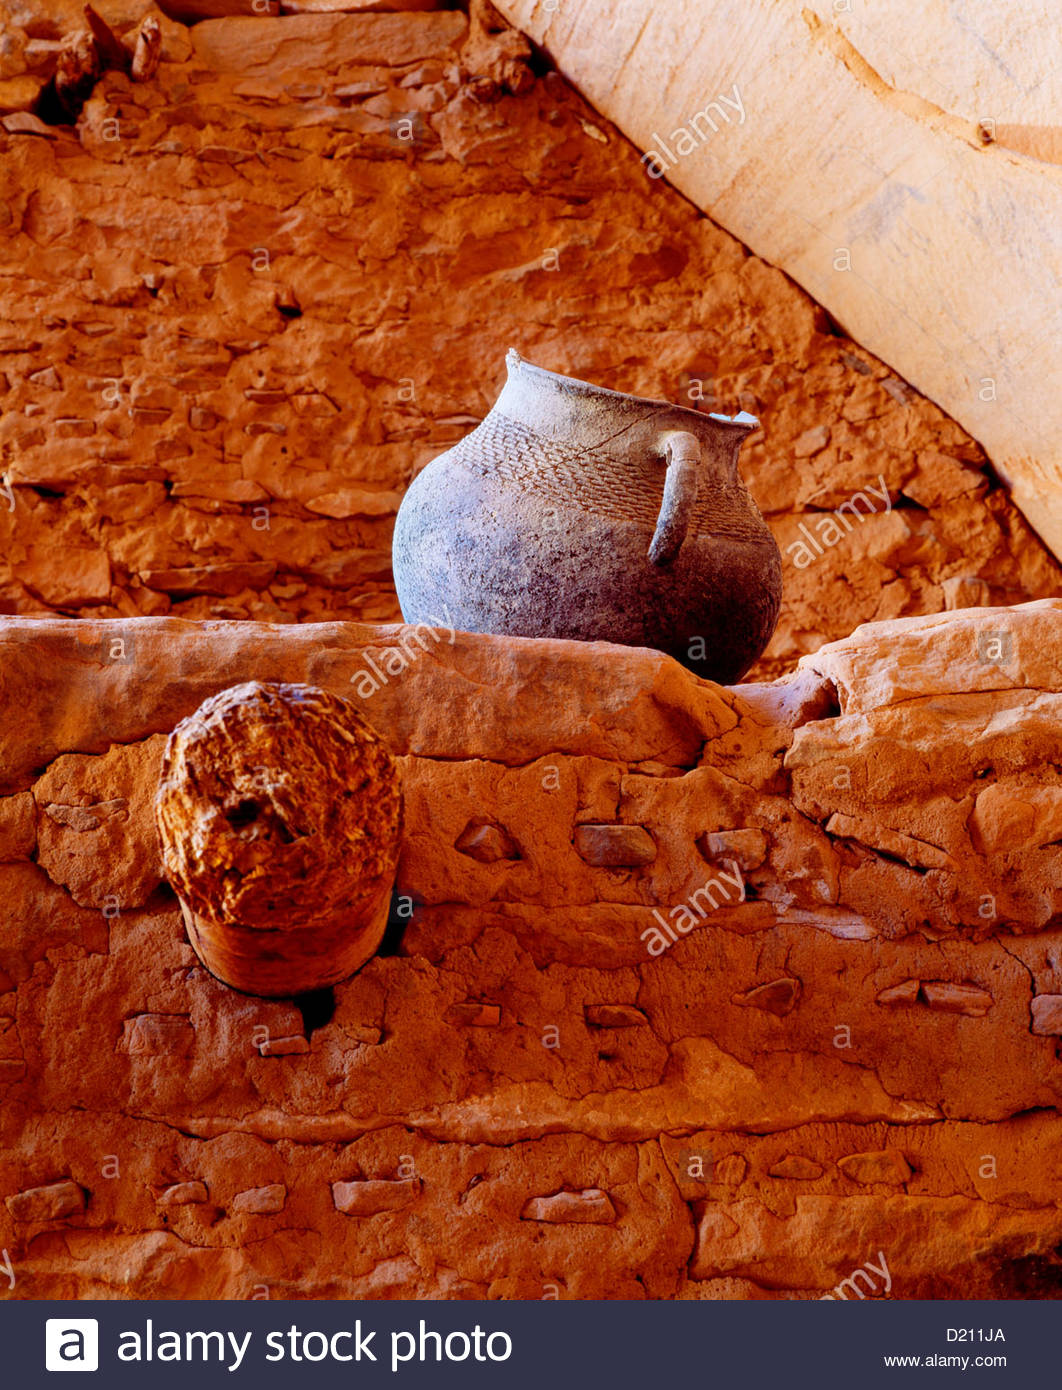 Kayenta Anasazi corrugated jar at Keet Seel cliff dwelling. Navajo National Monument, Arizona. - Stock Image